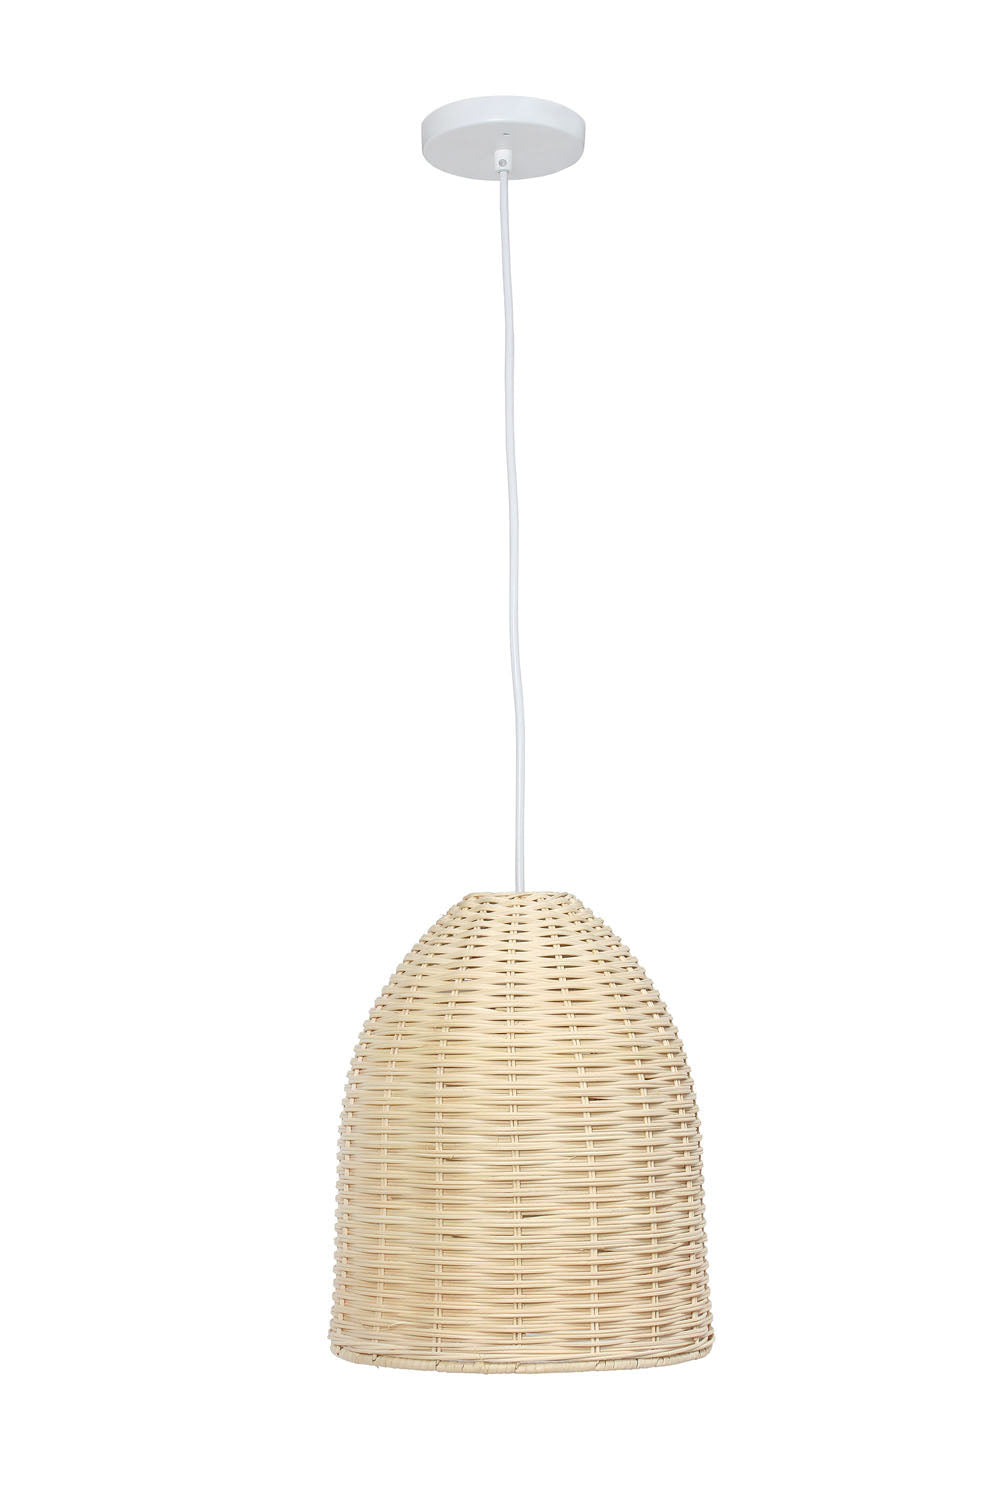 Elegant Designs Elongated Coastal Dome Rattan Downlight Pendant, Natural